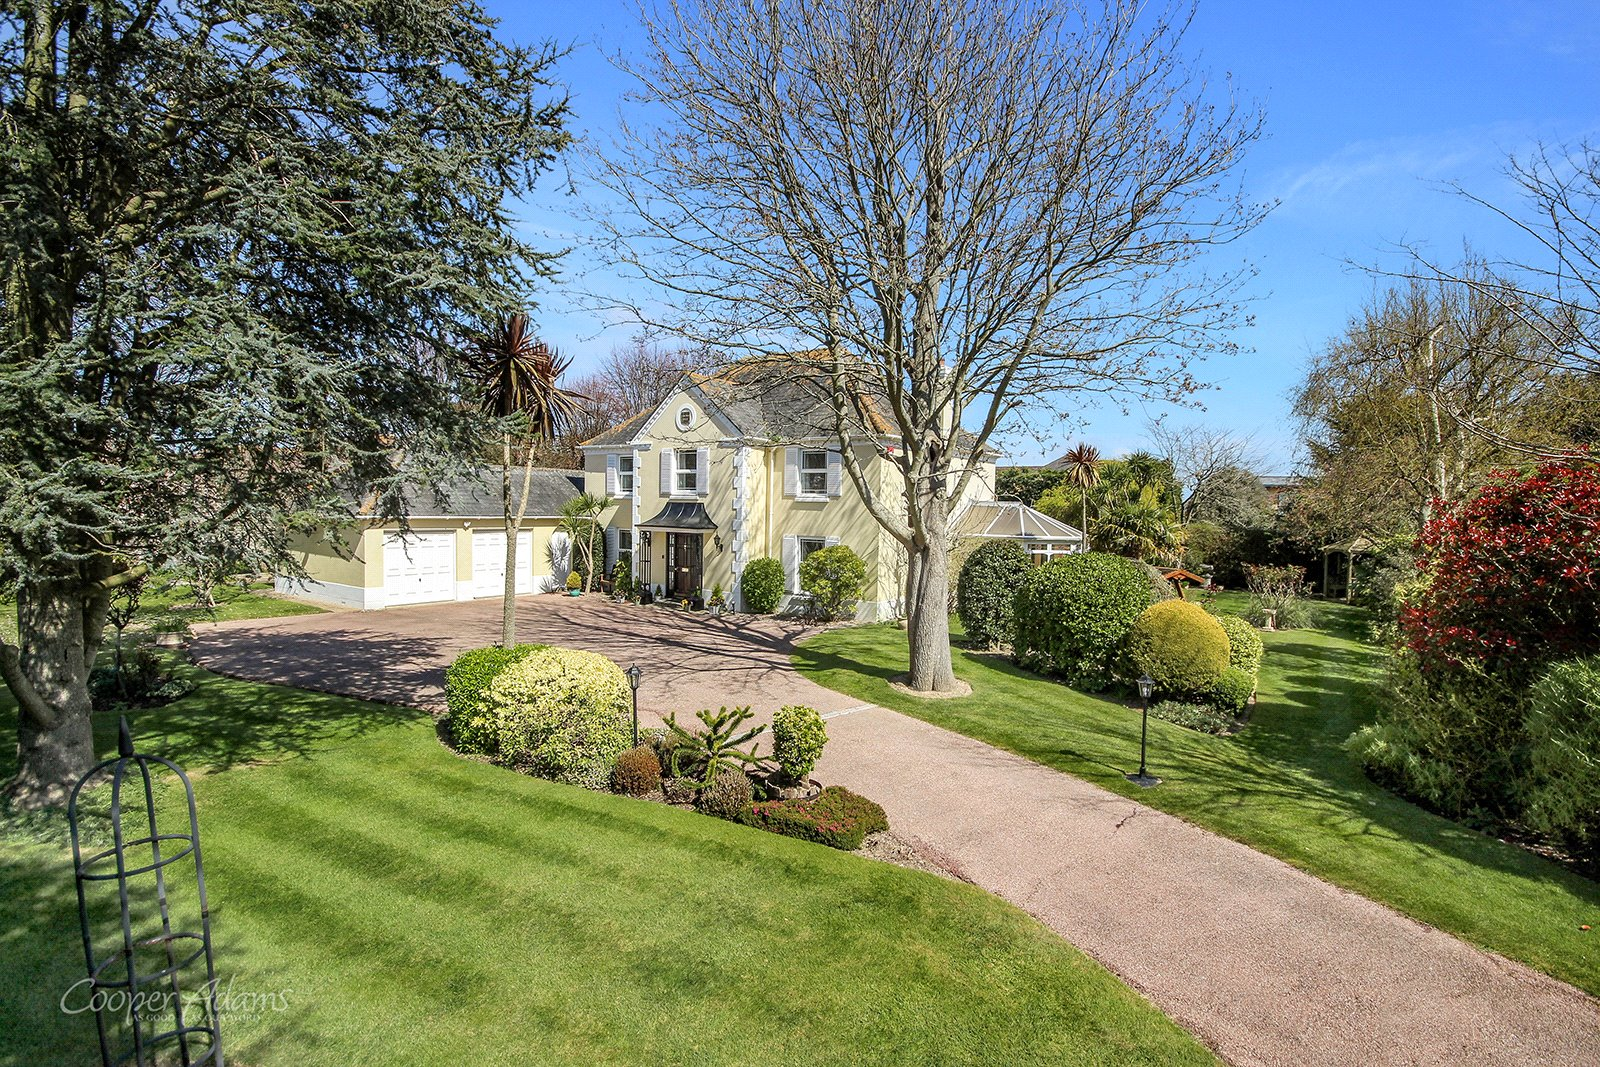 5 bed house for sale in The Oaks, The Willowhayne, Rustington, BN16